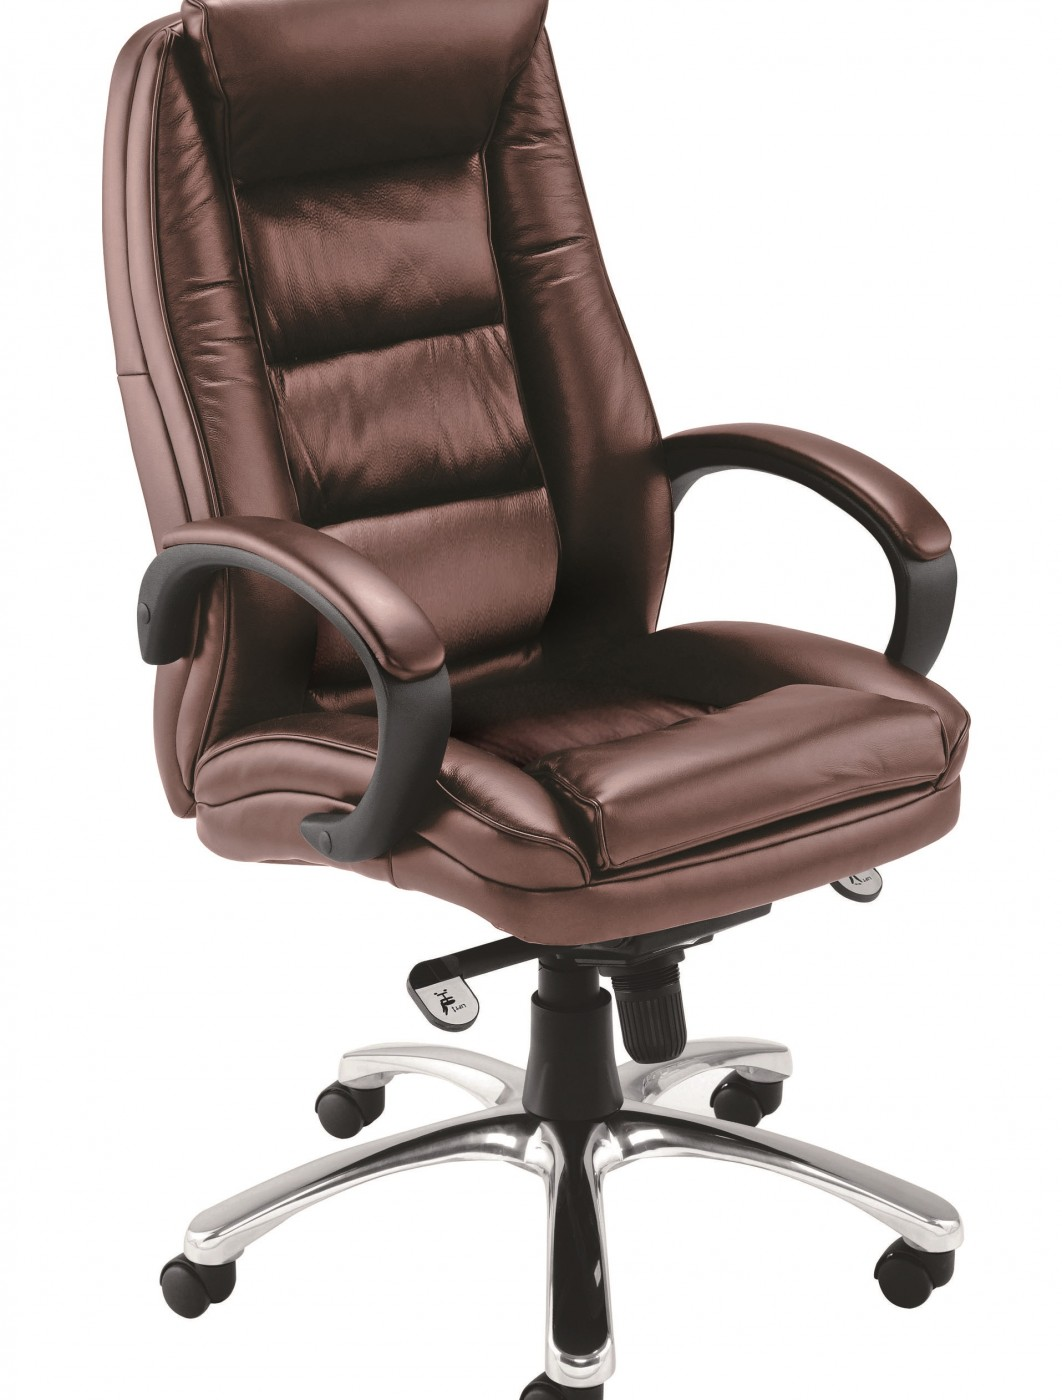 montana executive leather office chair ch0240 121 office furniture. Black Bedroom Furniture Sets. Home Design Ideas